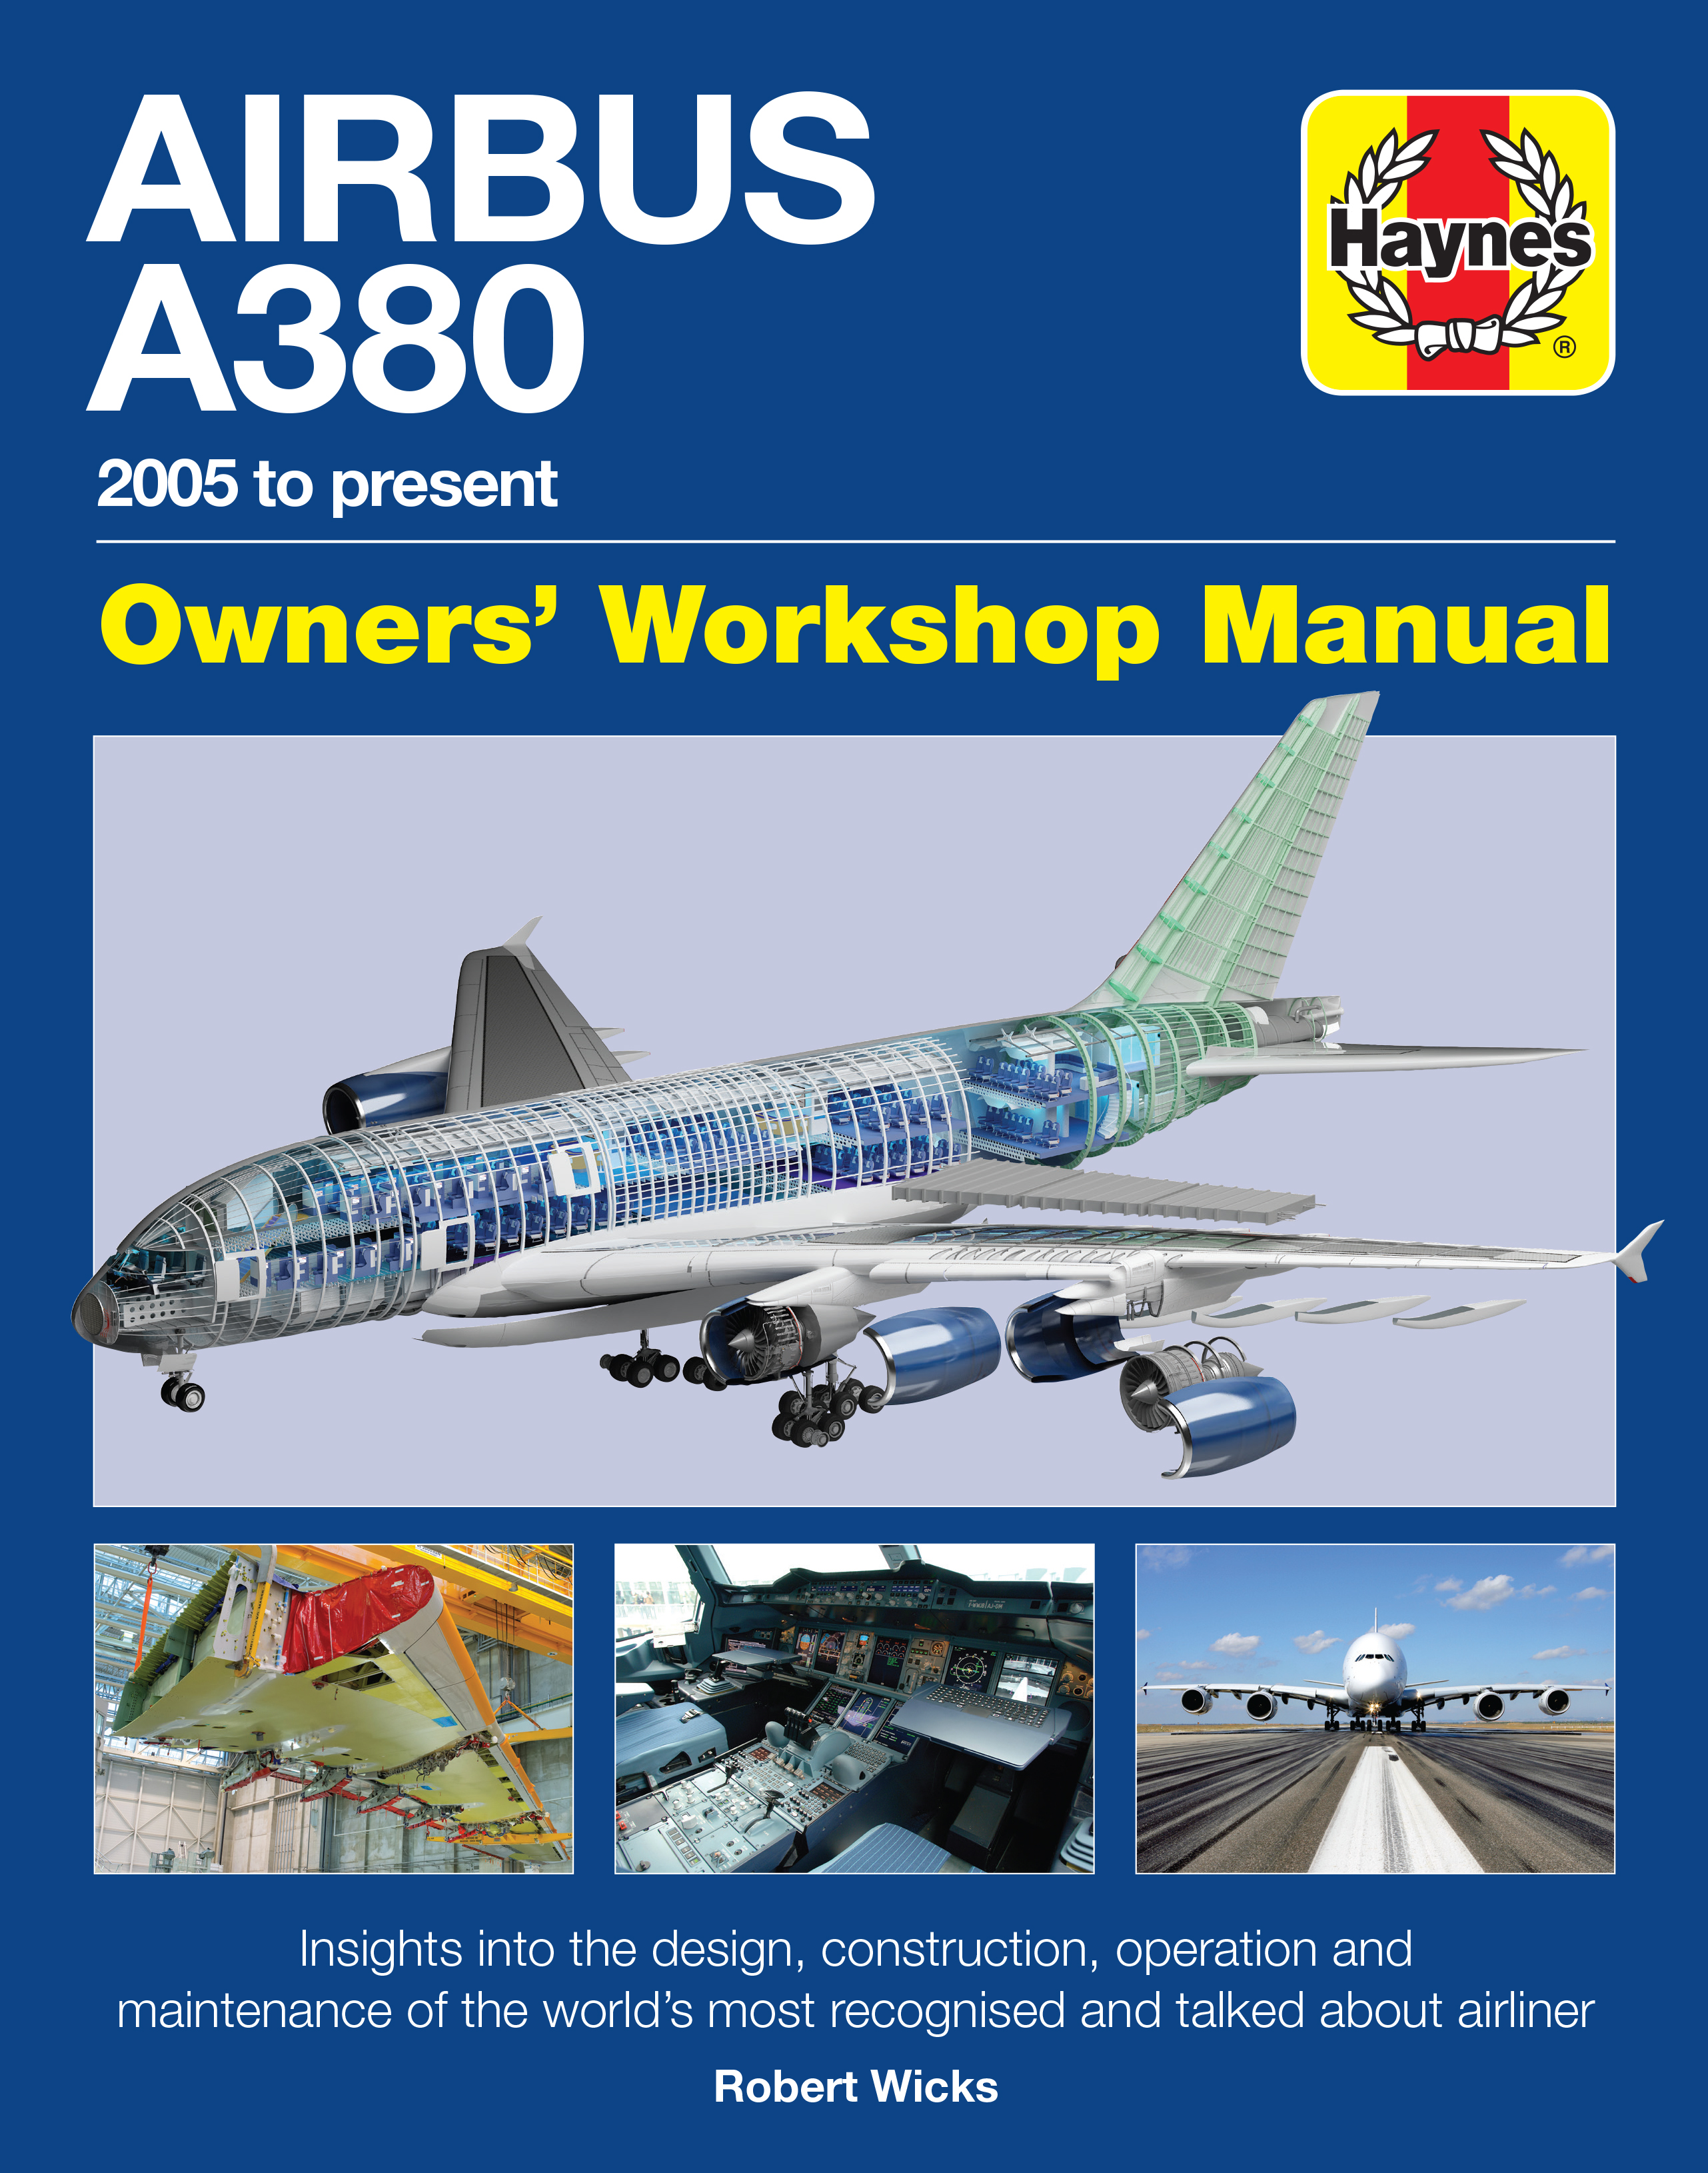 Airbus A380 Manual (2005 to present)